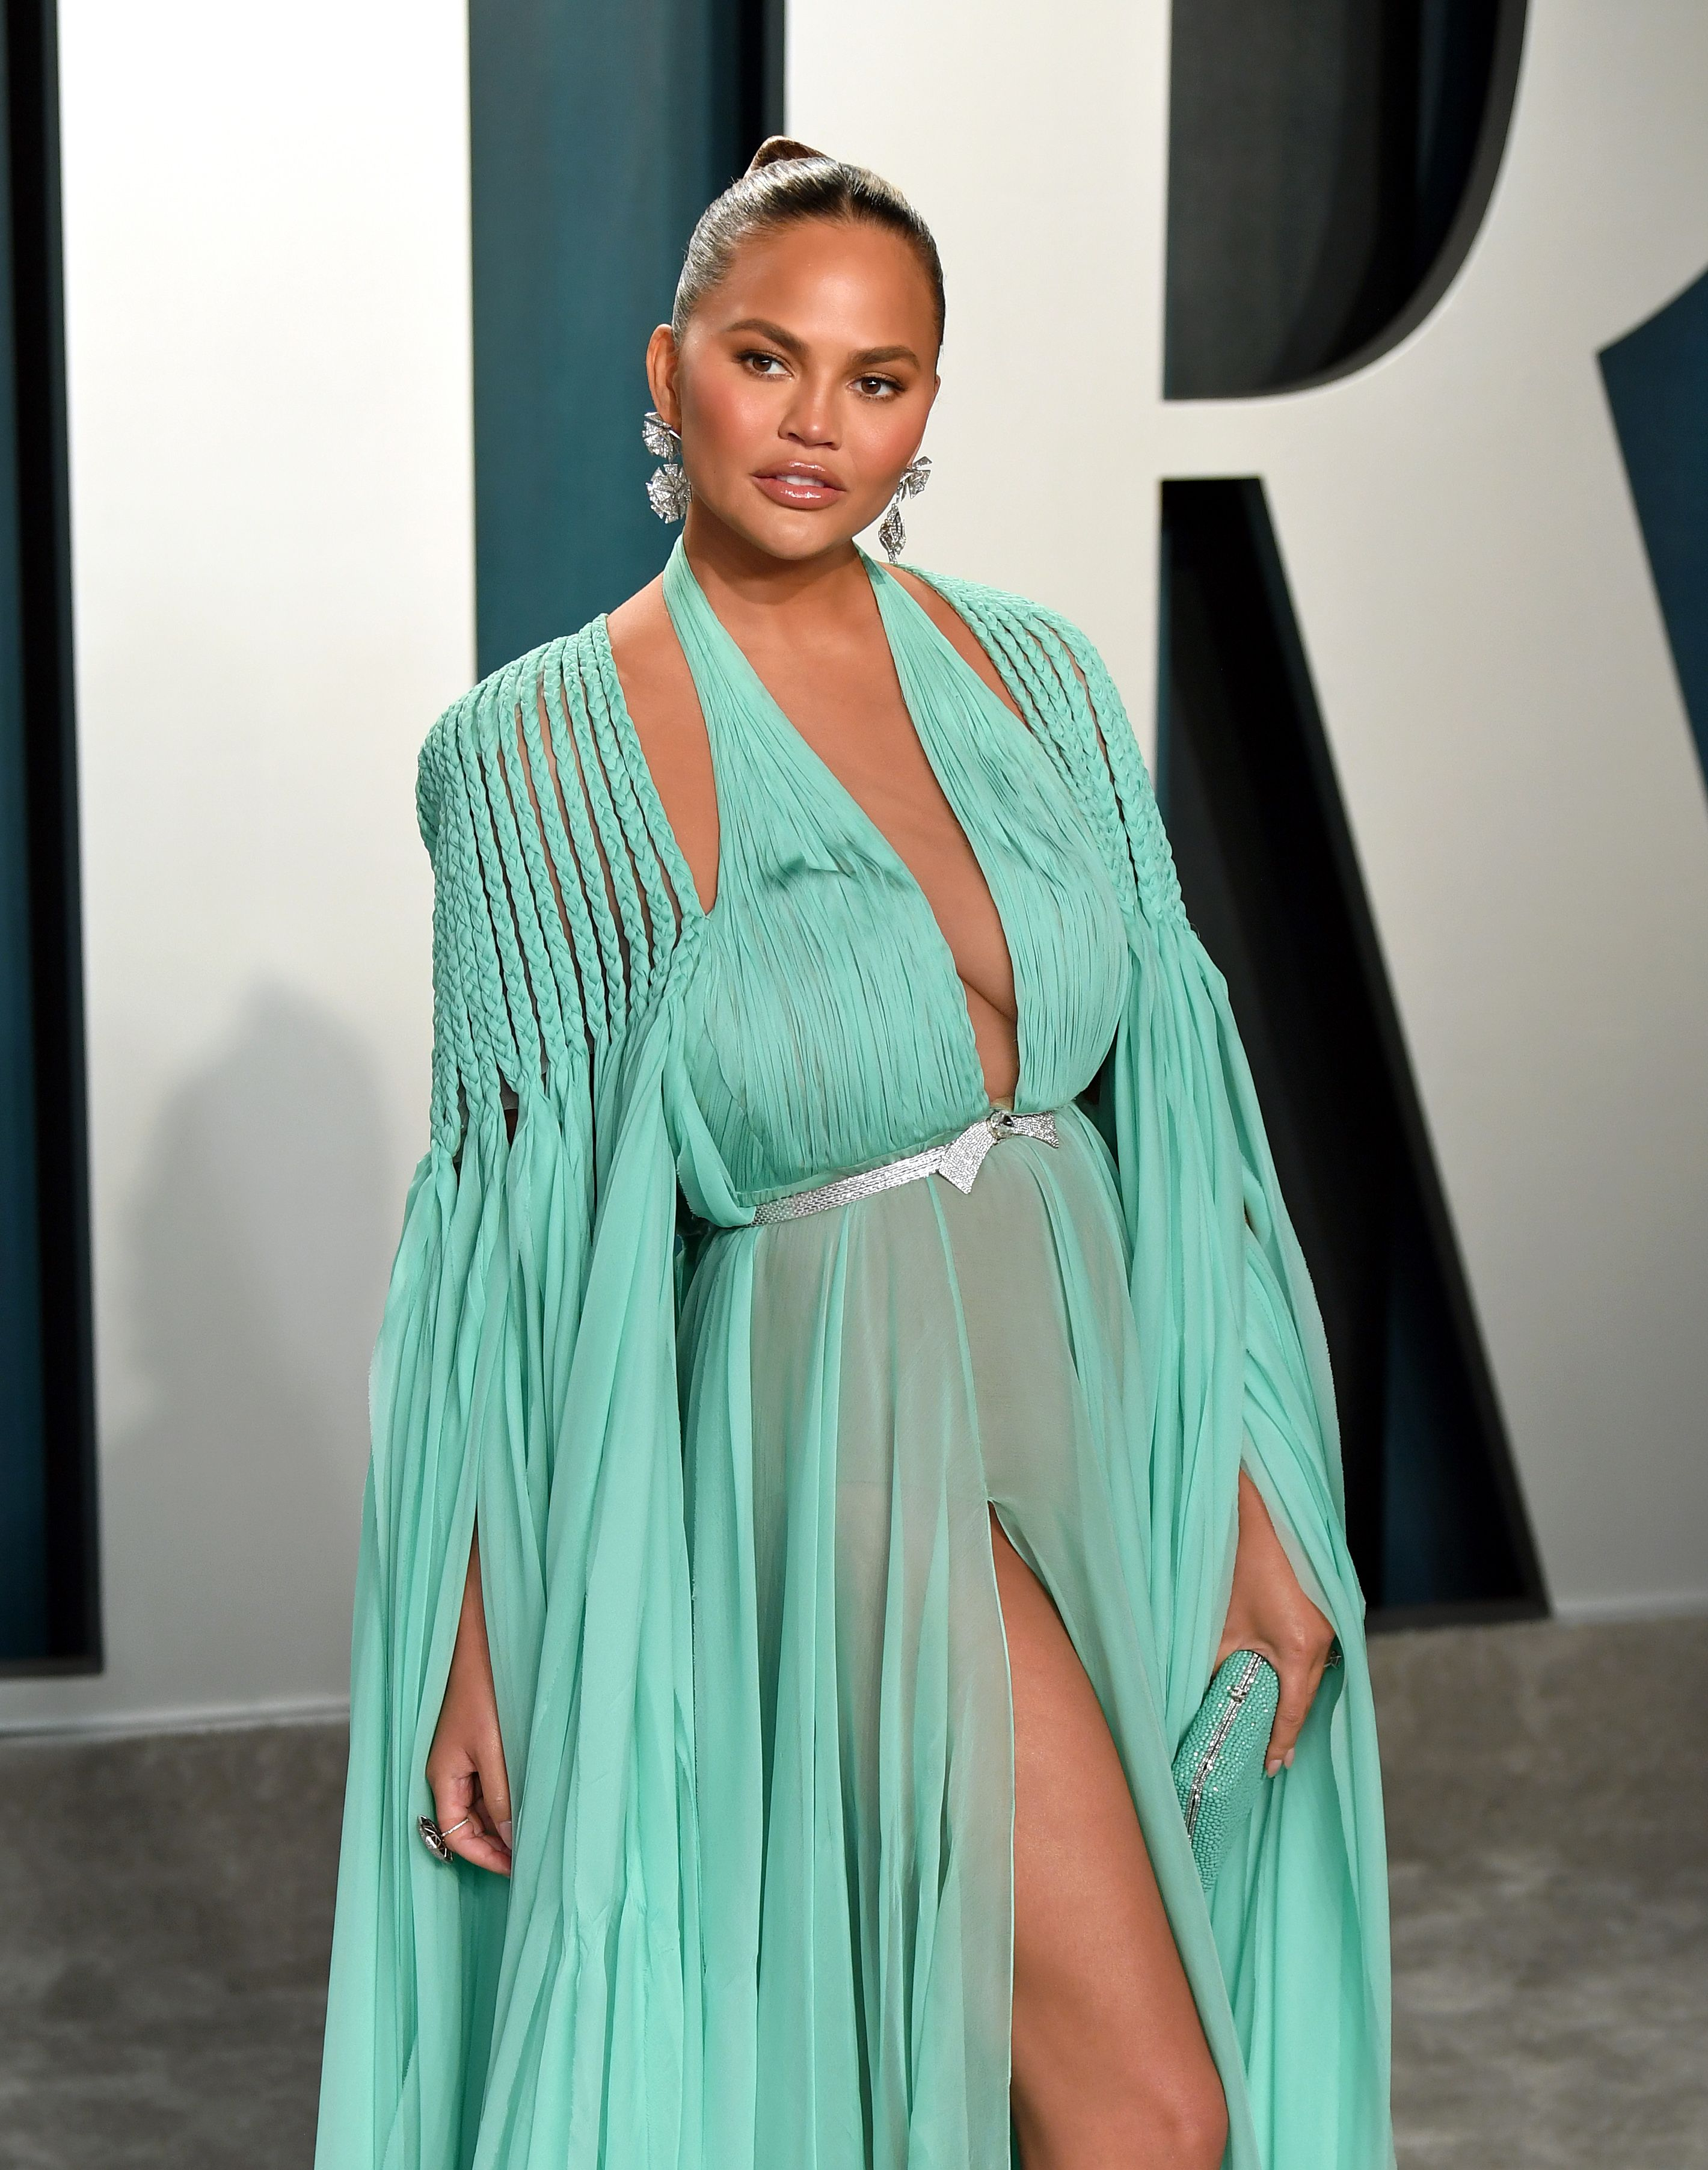 Chrissy Teigen at the 2020 Vanity Fair Oscar Party in February 2020 in Beverly Hills. | Photo:Getty Images